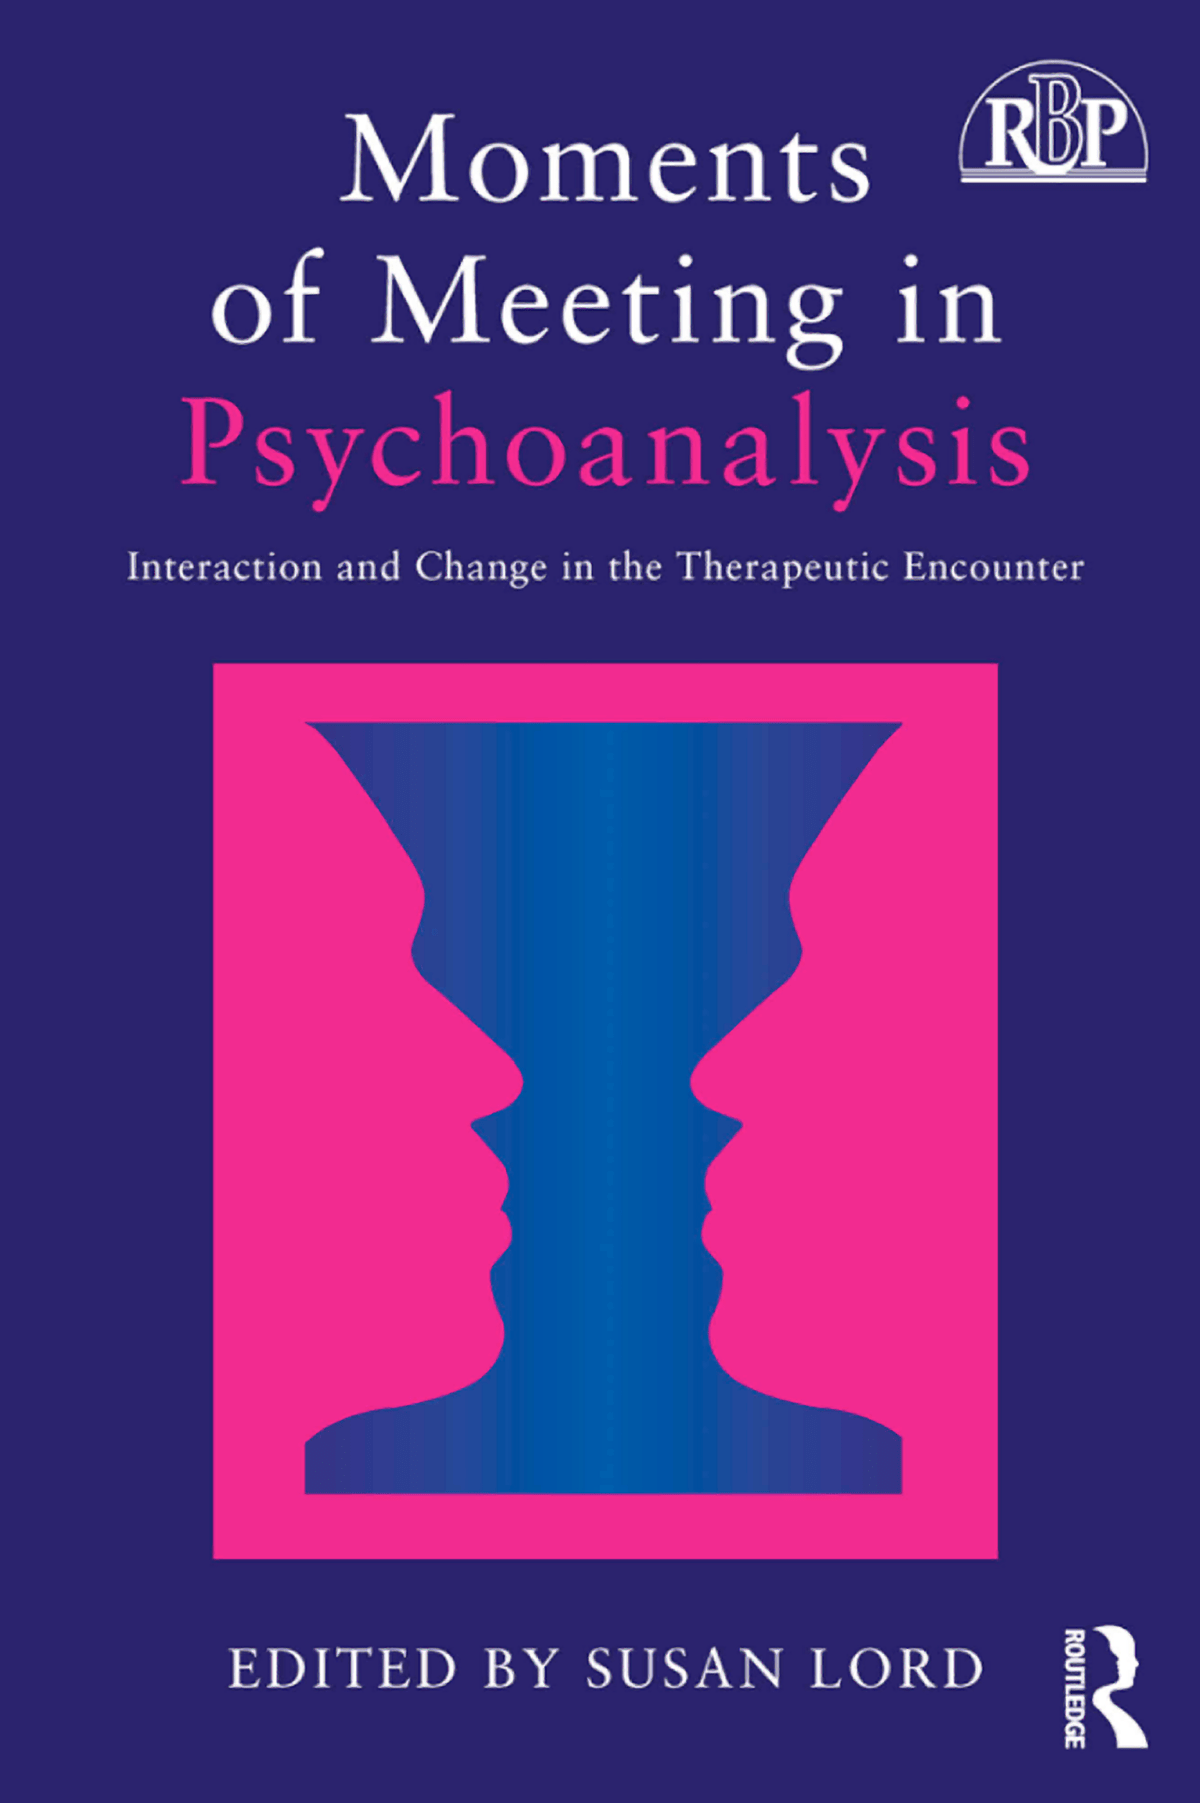 Moments of Meeting in Psychoanalysis: Interaction and Change in the Therapeutic Encounter (Relational Perspectives Book Series) 1st Edition by Susan Lord (Editor)